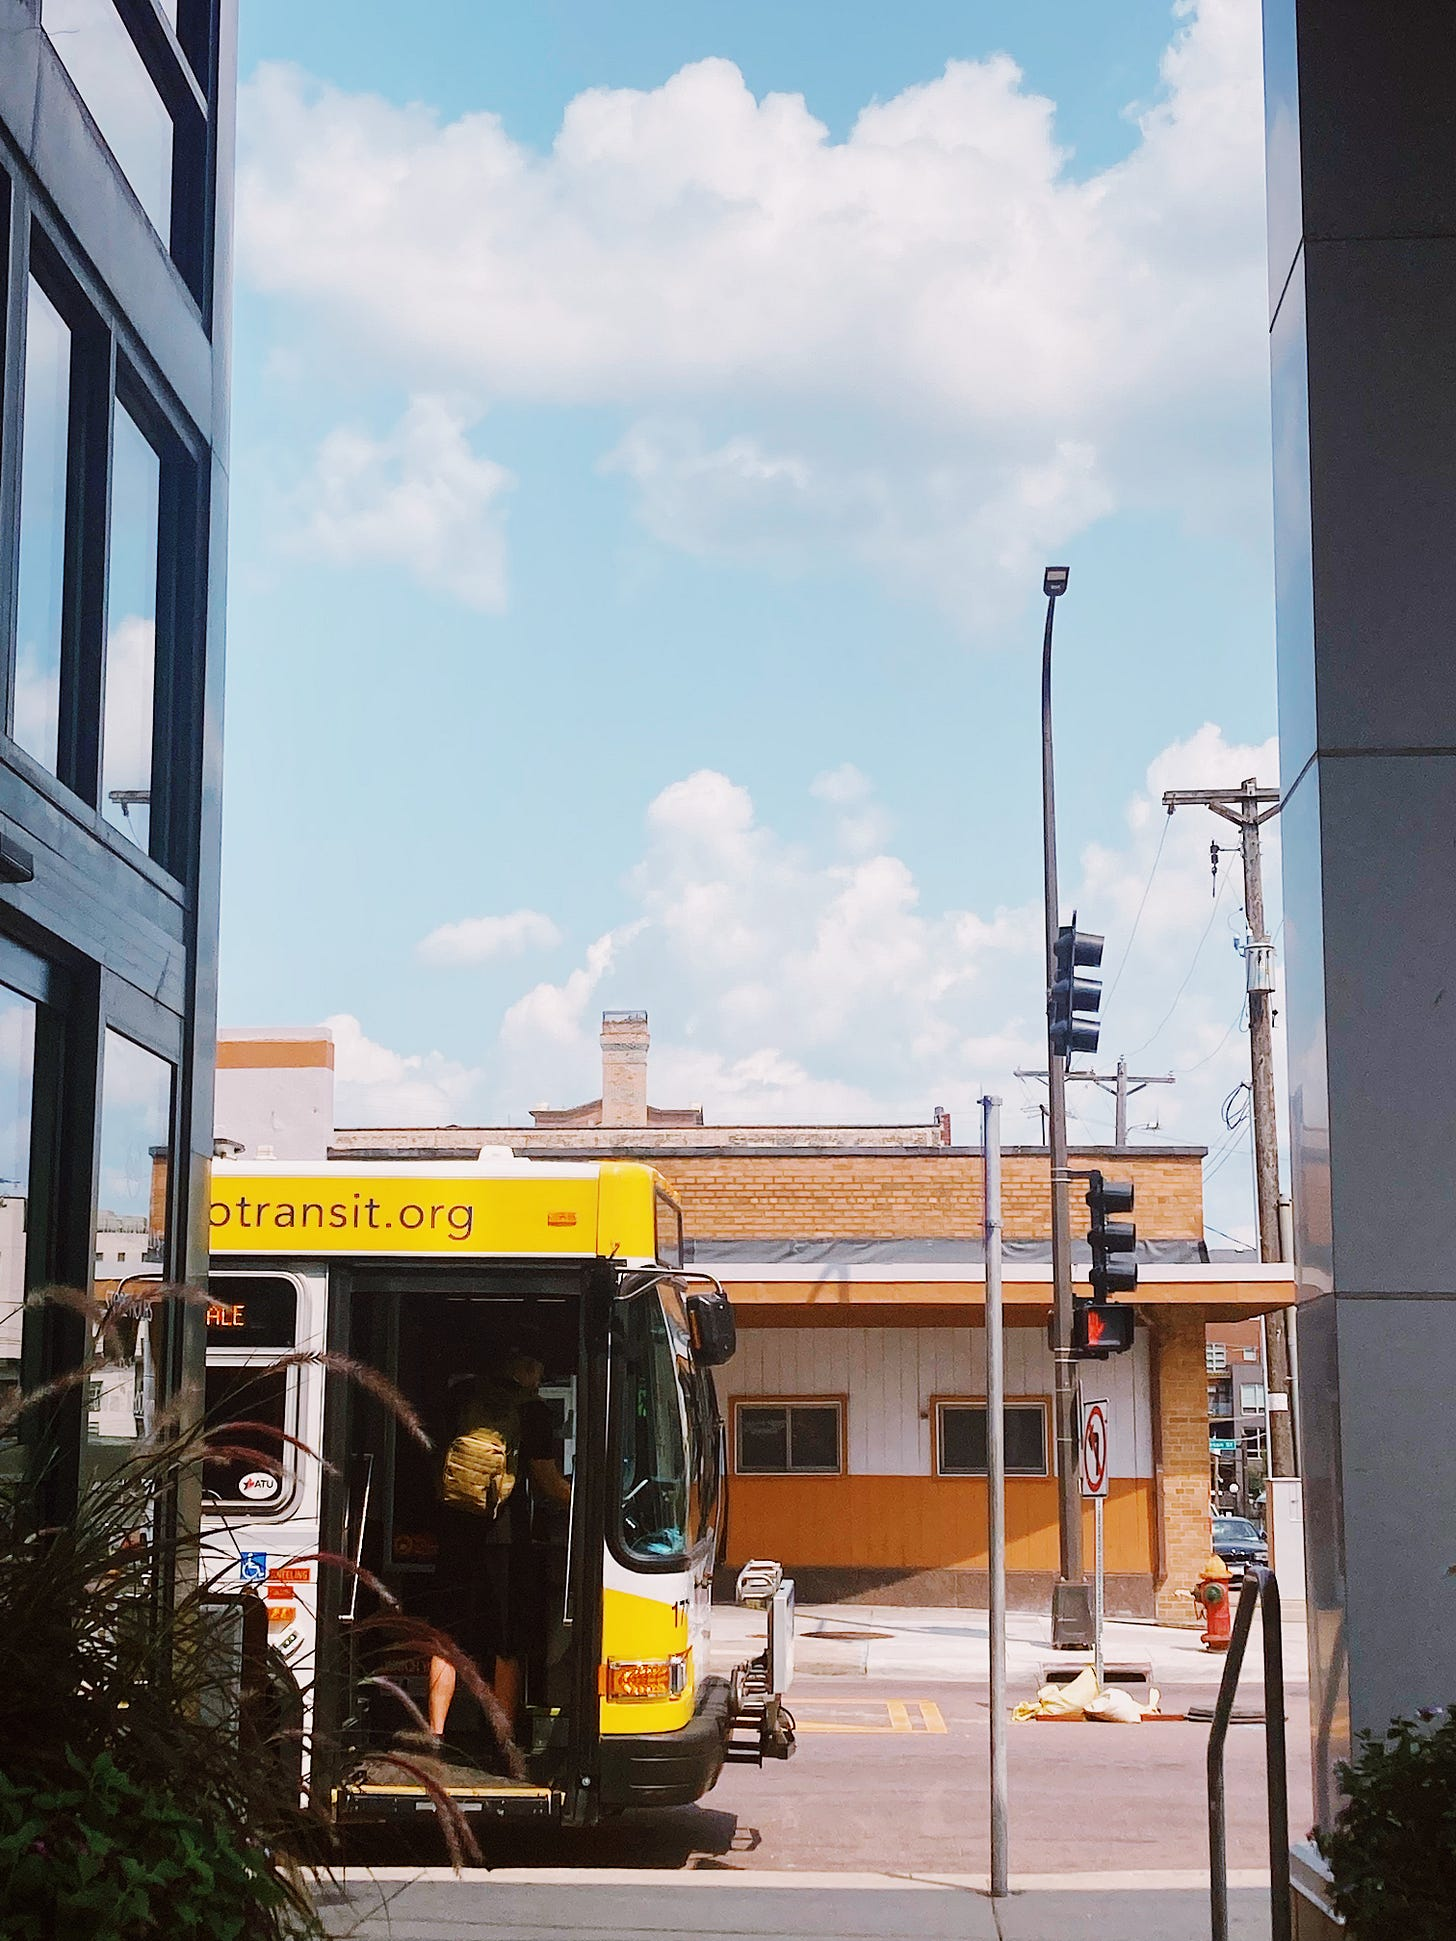 a passenger climbs onto a metro transit bus in front of a brick building and blue sky with white clouds